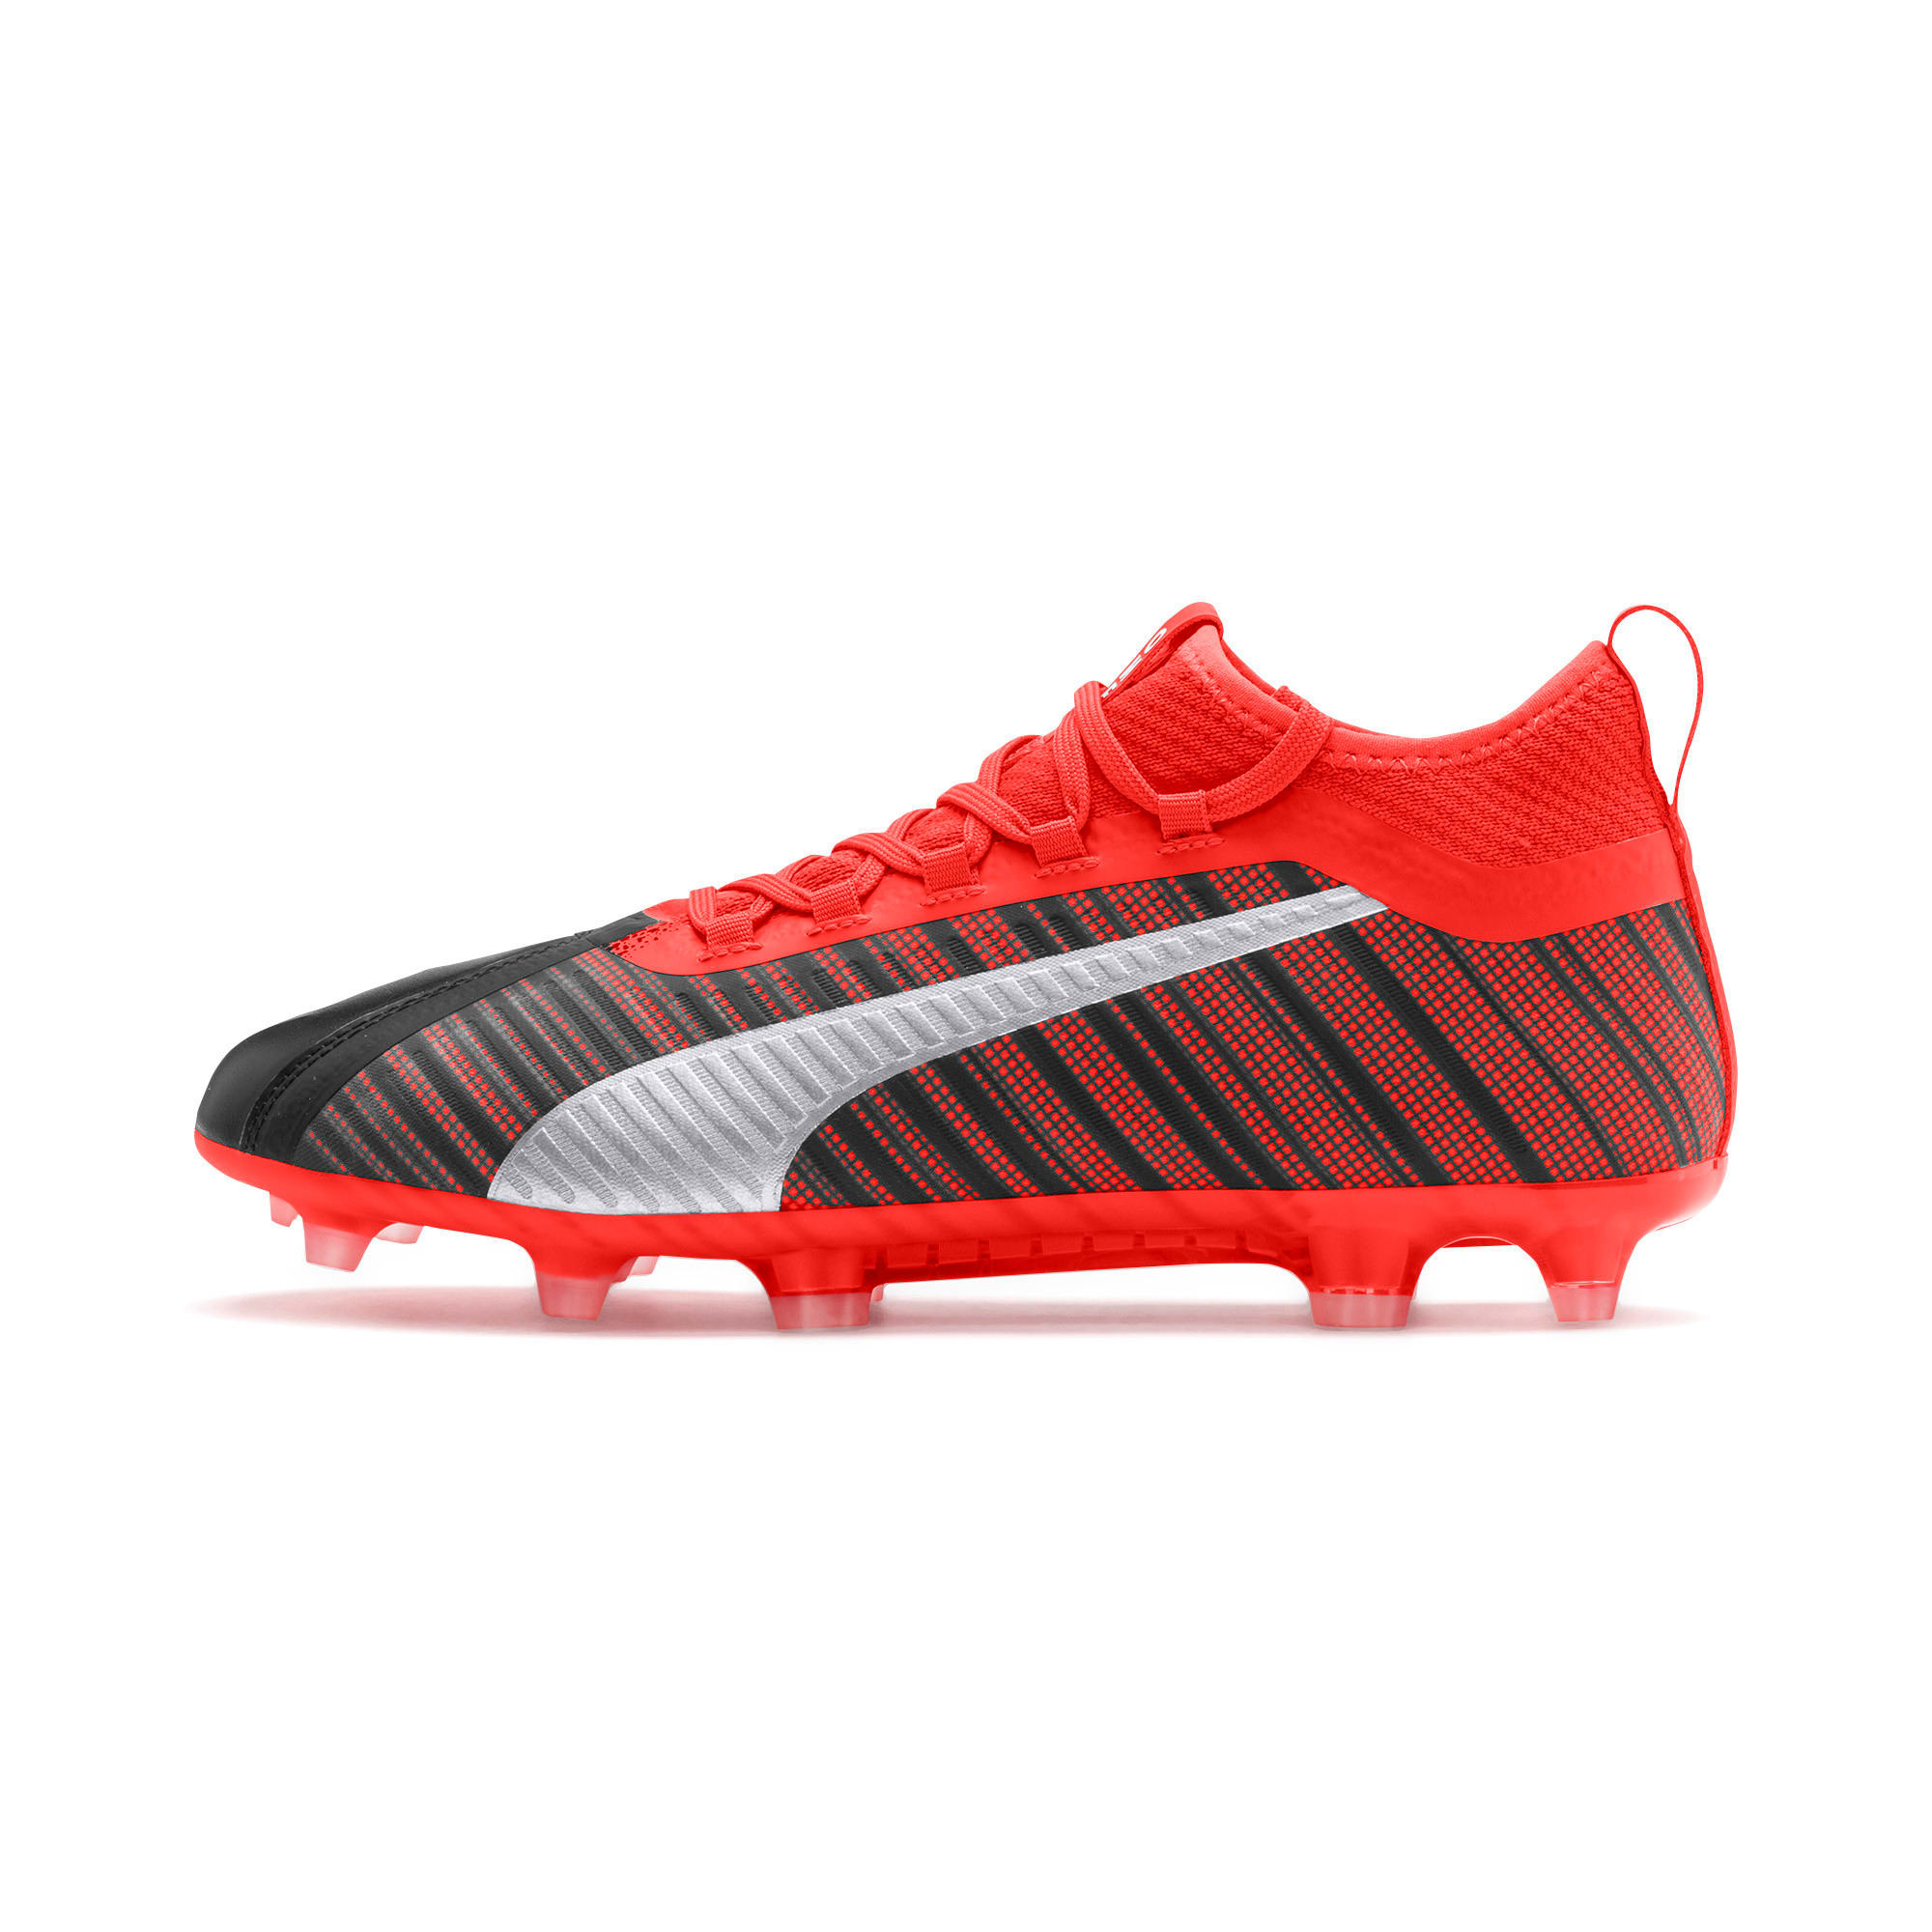 Thumbnail 1 of PUMA ONE 5.2 FG/AG Herren Fußballschuhe, Black-Nrgy Red-Aged Silver, medium